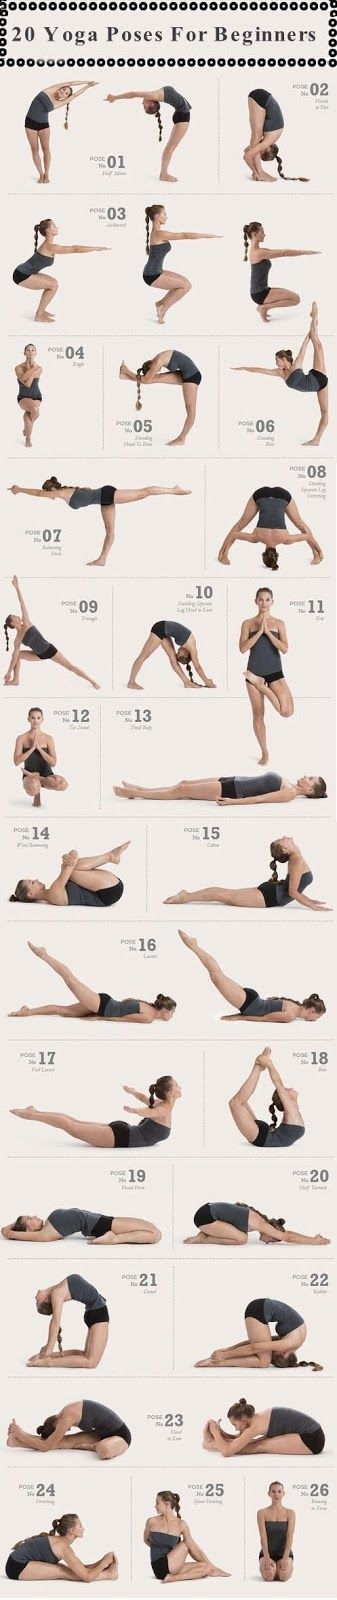 20 Amazing Yoga Poses For Beginners